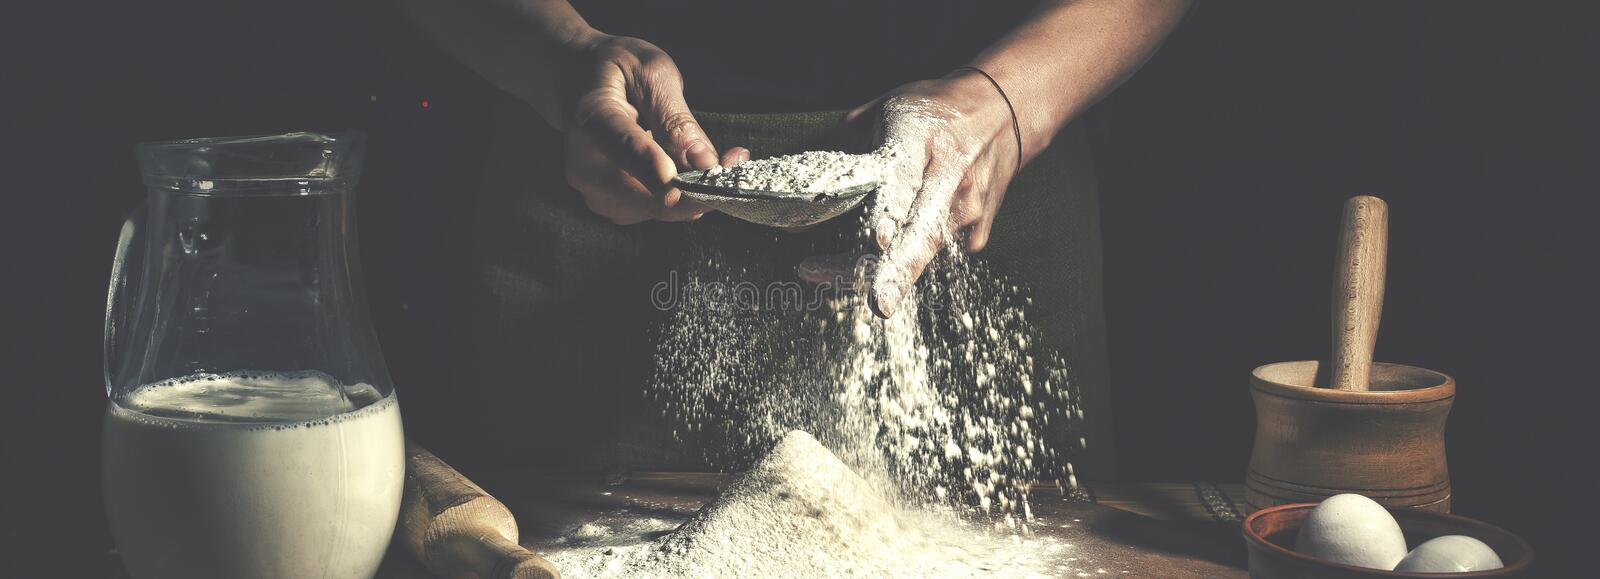 Man preparing bread dough on wooden table in a bakery close up. Preparation of Easter bread. royalty free stock photography